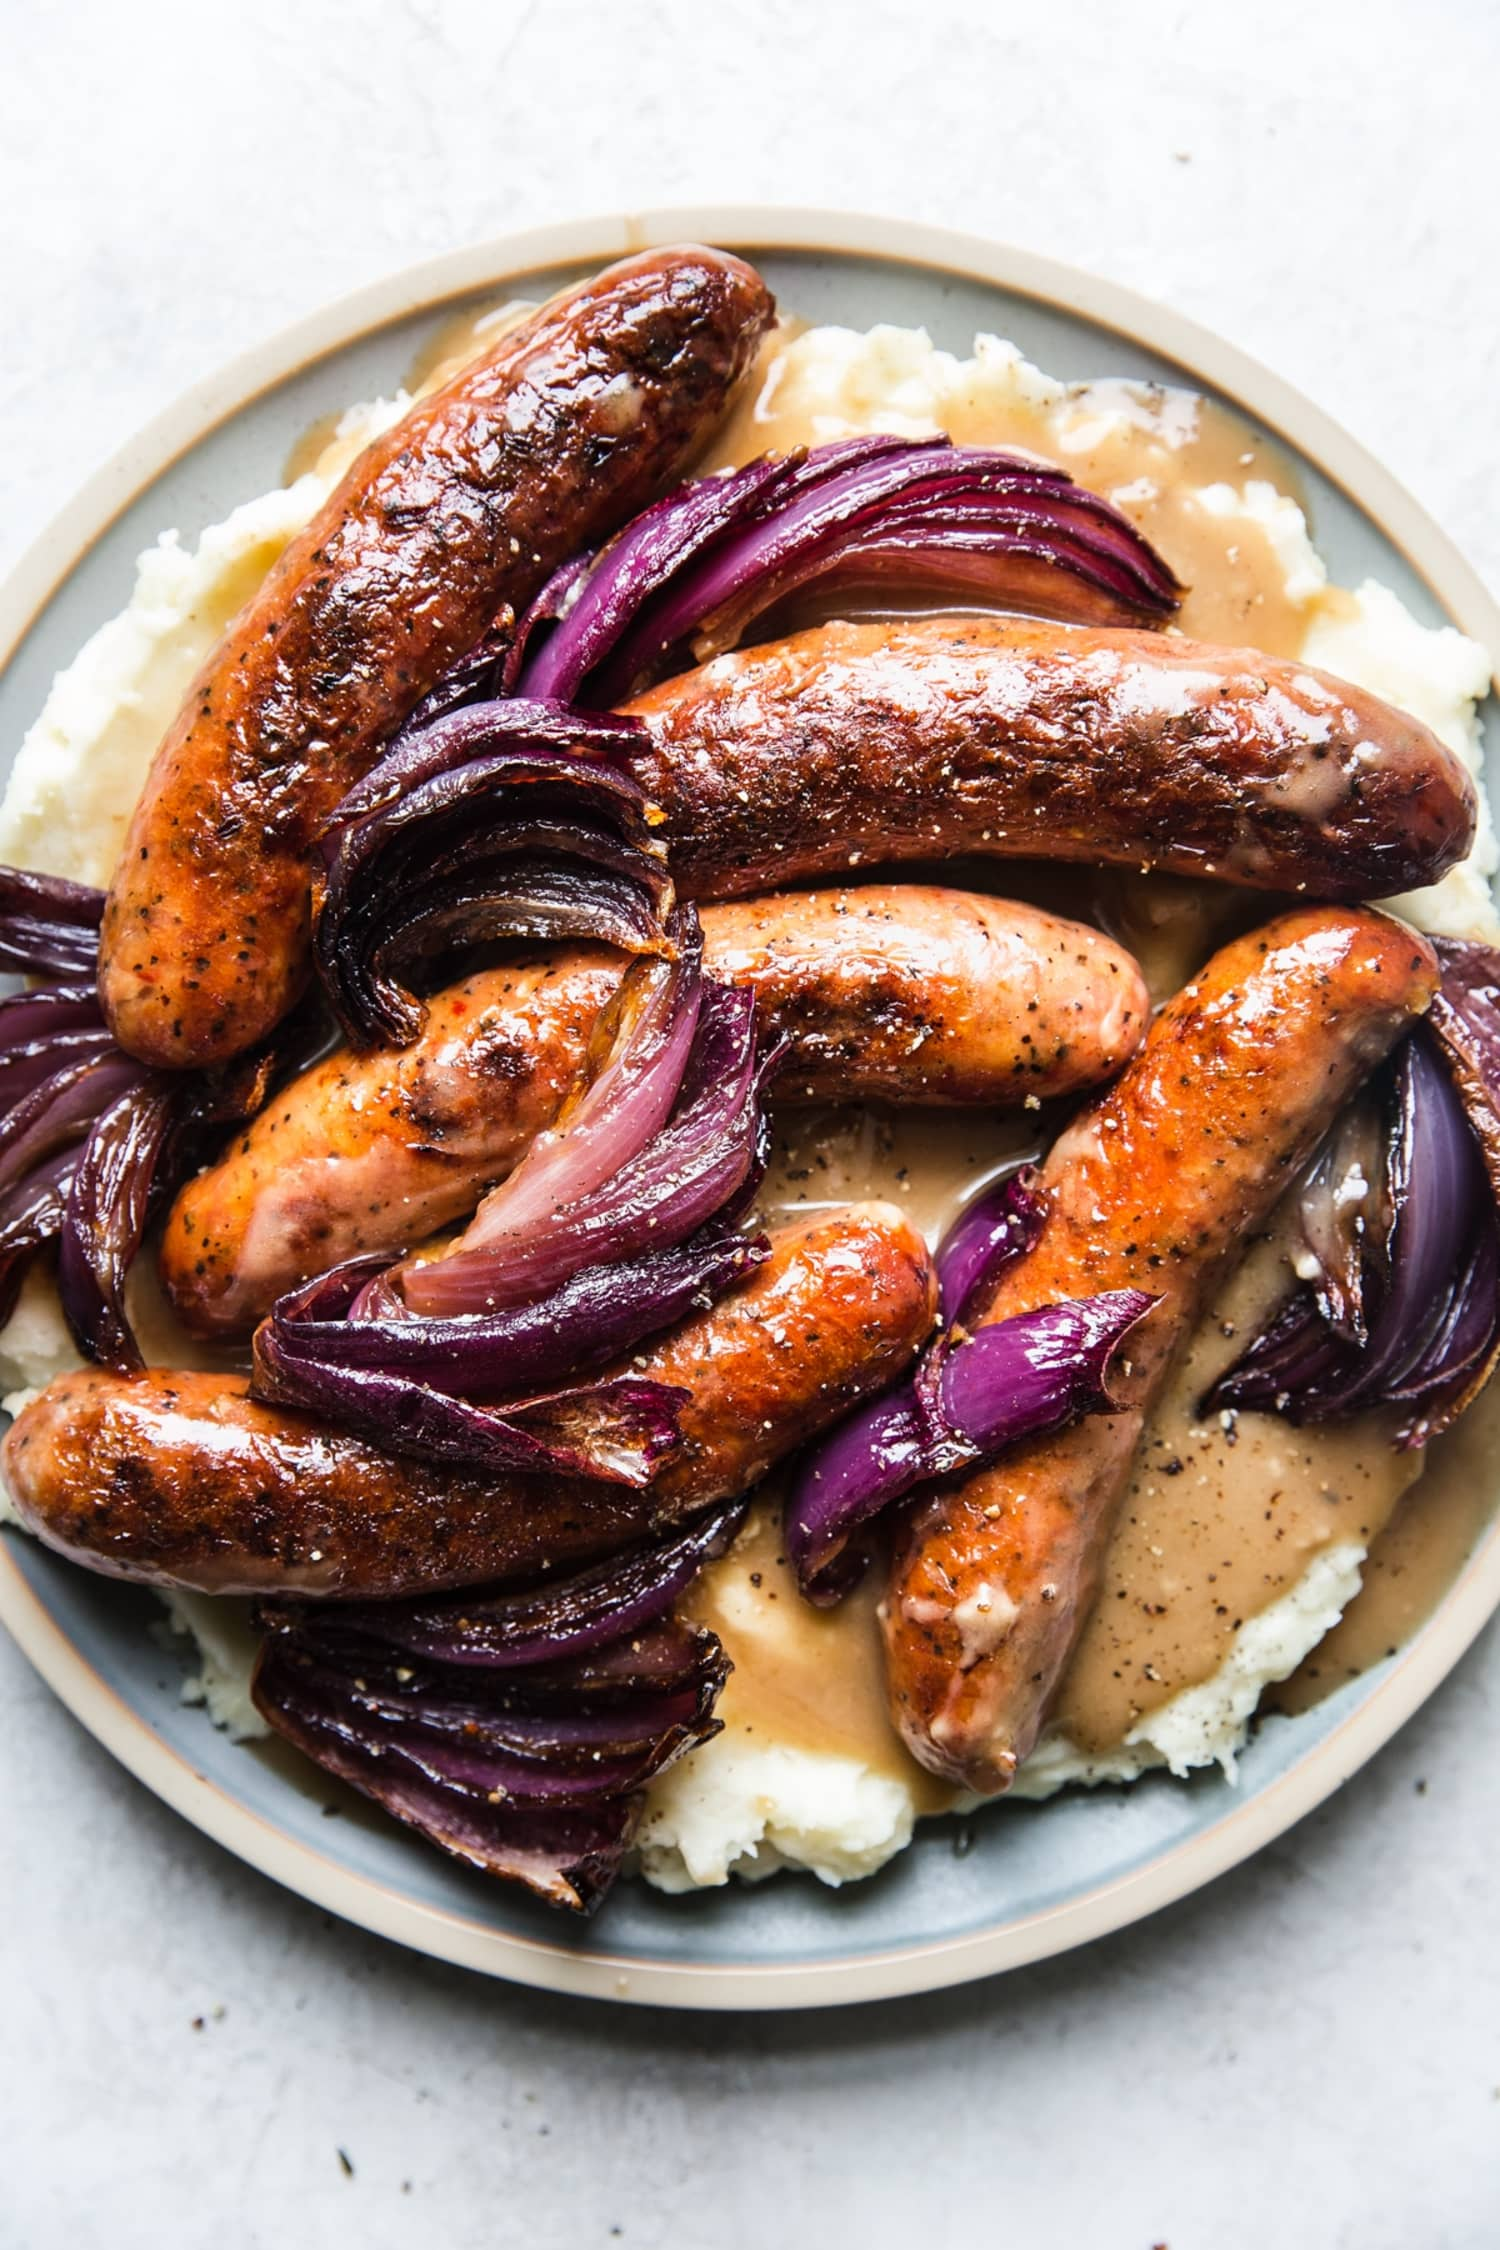 You Should Make Bangers and Mash with Caramelized Onions for St. Patrick's Day